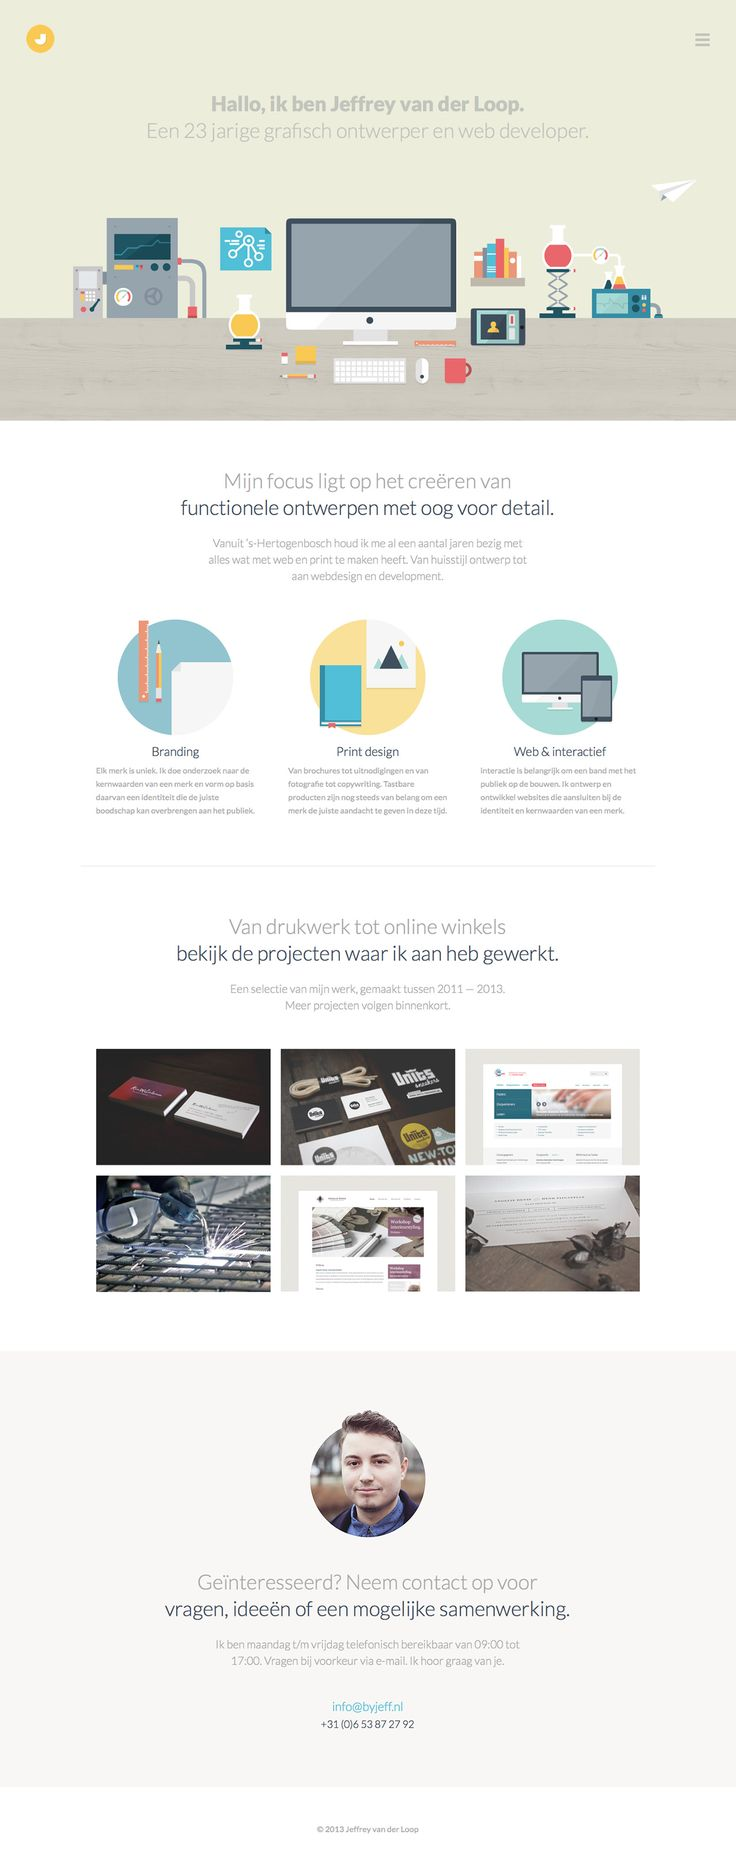 Clean responsive flat design in this one page portfolio for Dutch graphic designer and web developer Jeffrey van der Loop. Lovely little touch with the hair sticking out of the circle profile image.